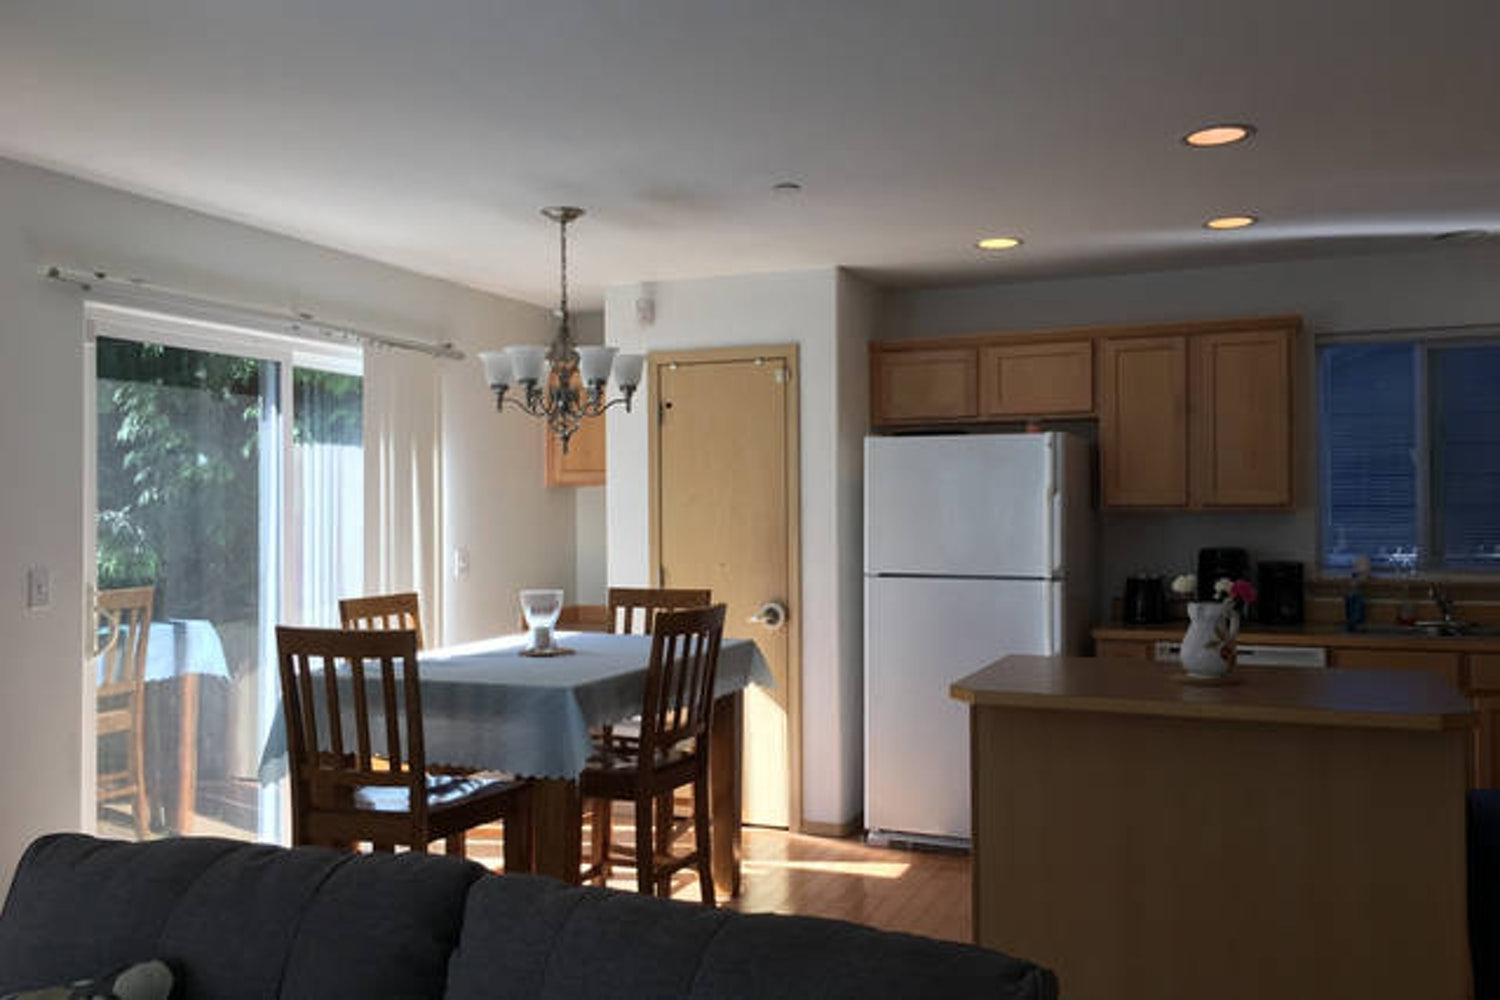 Room in a 4 BR, 2 5 bath house, all utils, wifi included